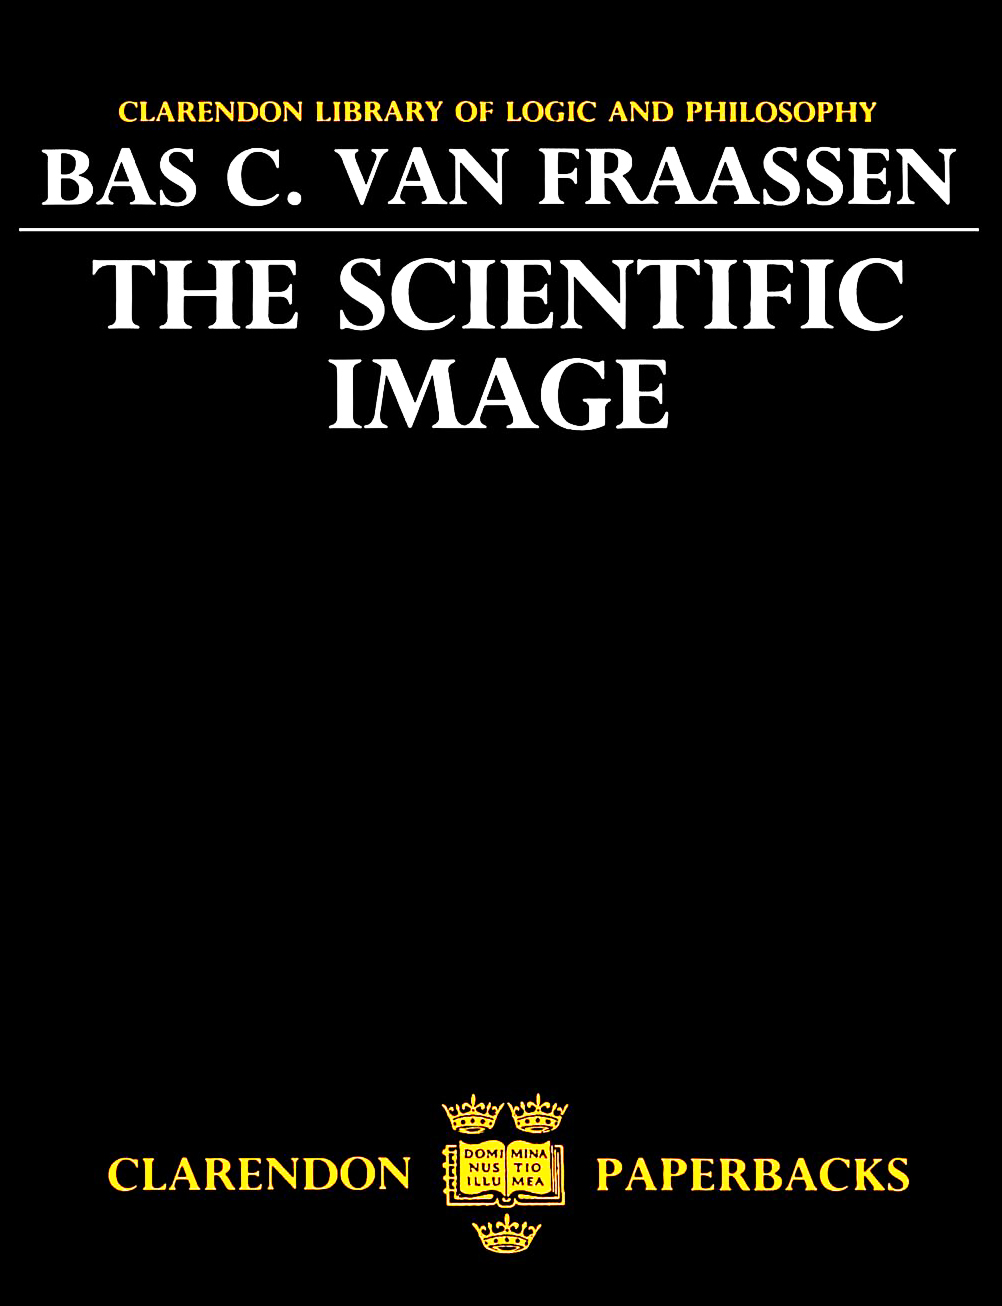 an analysis of the explanations in science by c van fraassen Terming his view constructive empiricism van fraassen claimed that theoretical science was properly construed as a creative process of model construction rather.